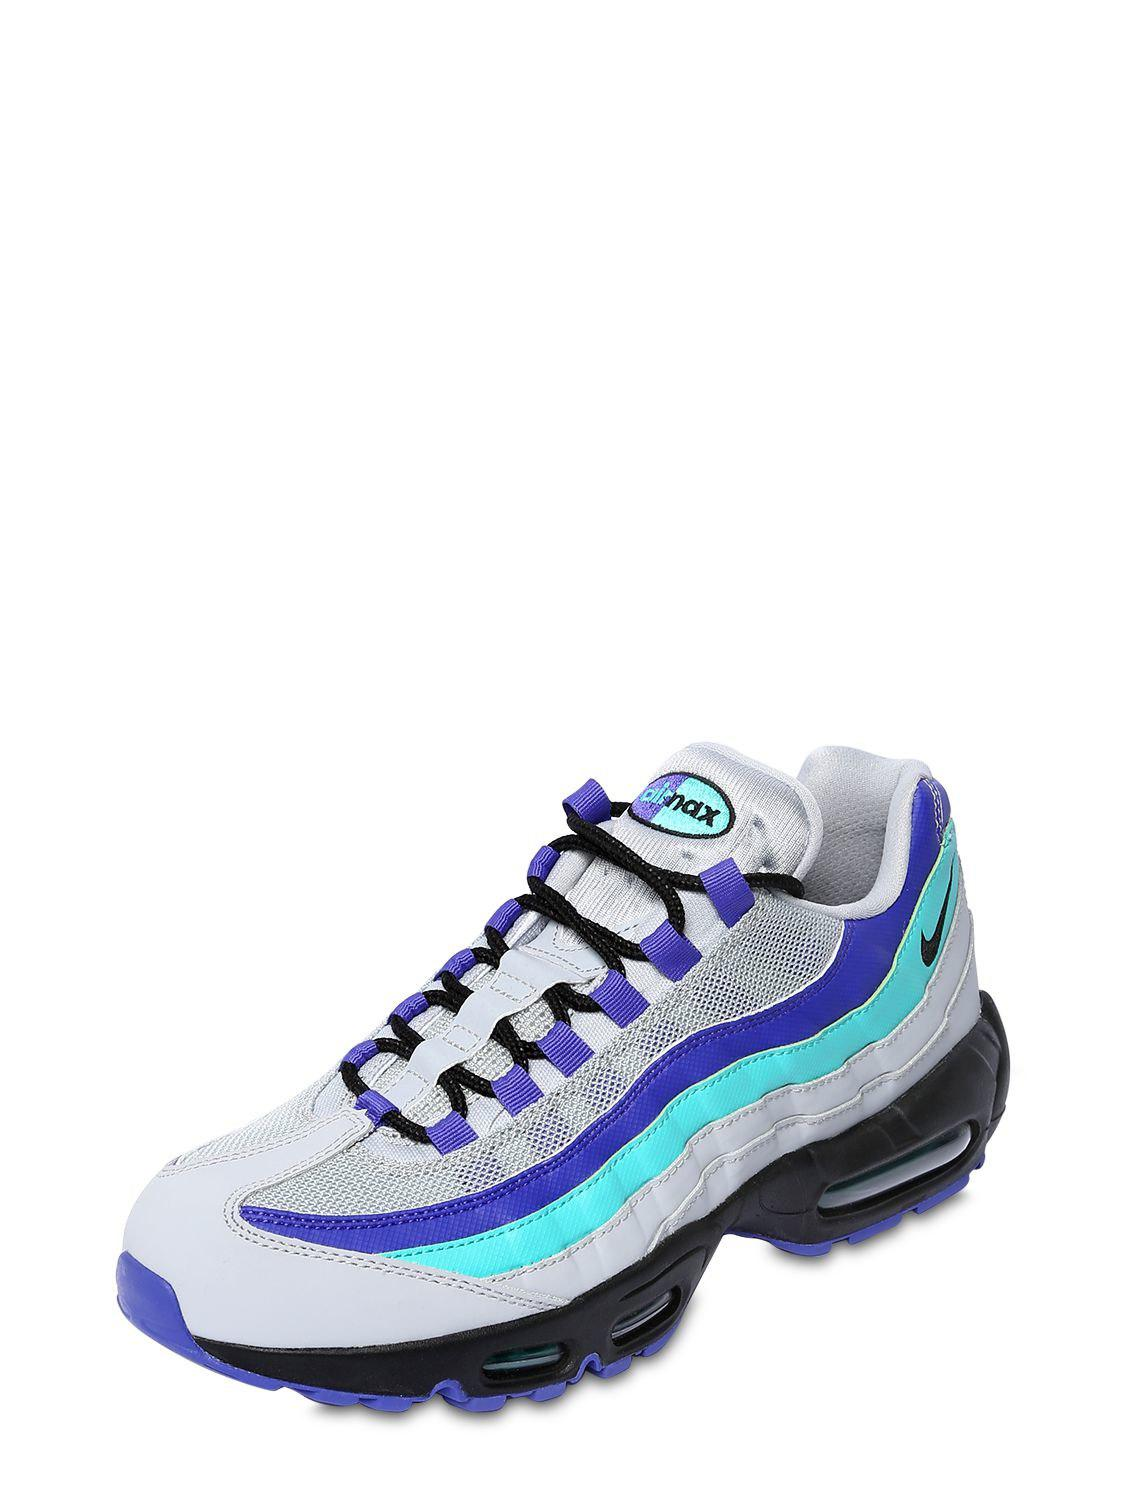 0a2cbbffd00 Nike Air Max 95 Og Sneakers for Men - Lyst